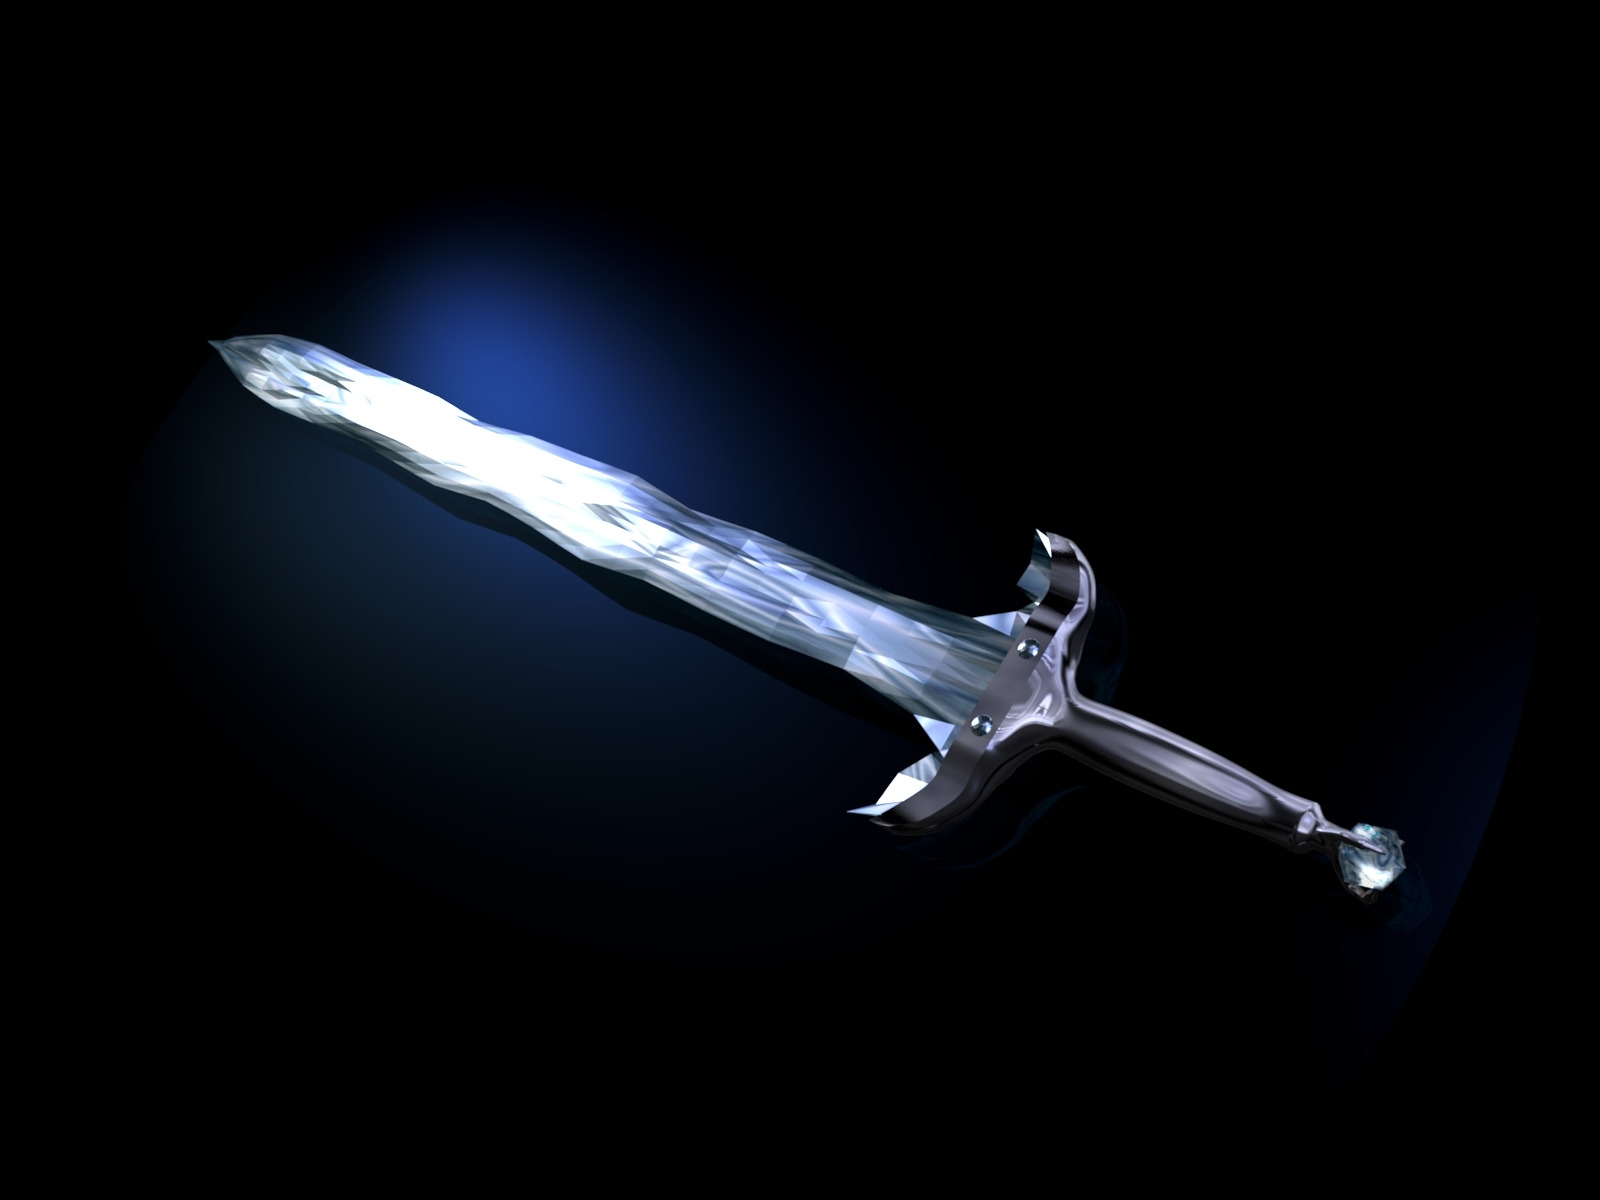 Crystal_Sword_by_Tasyne.jpg